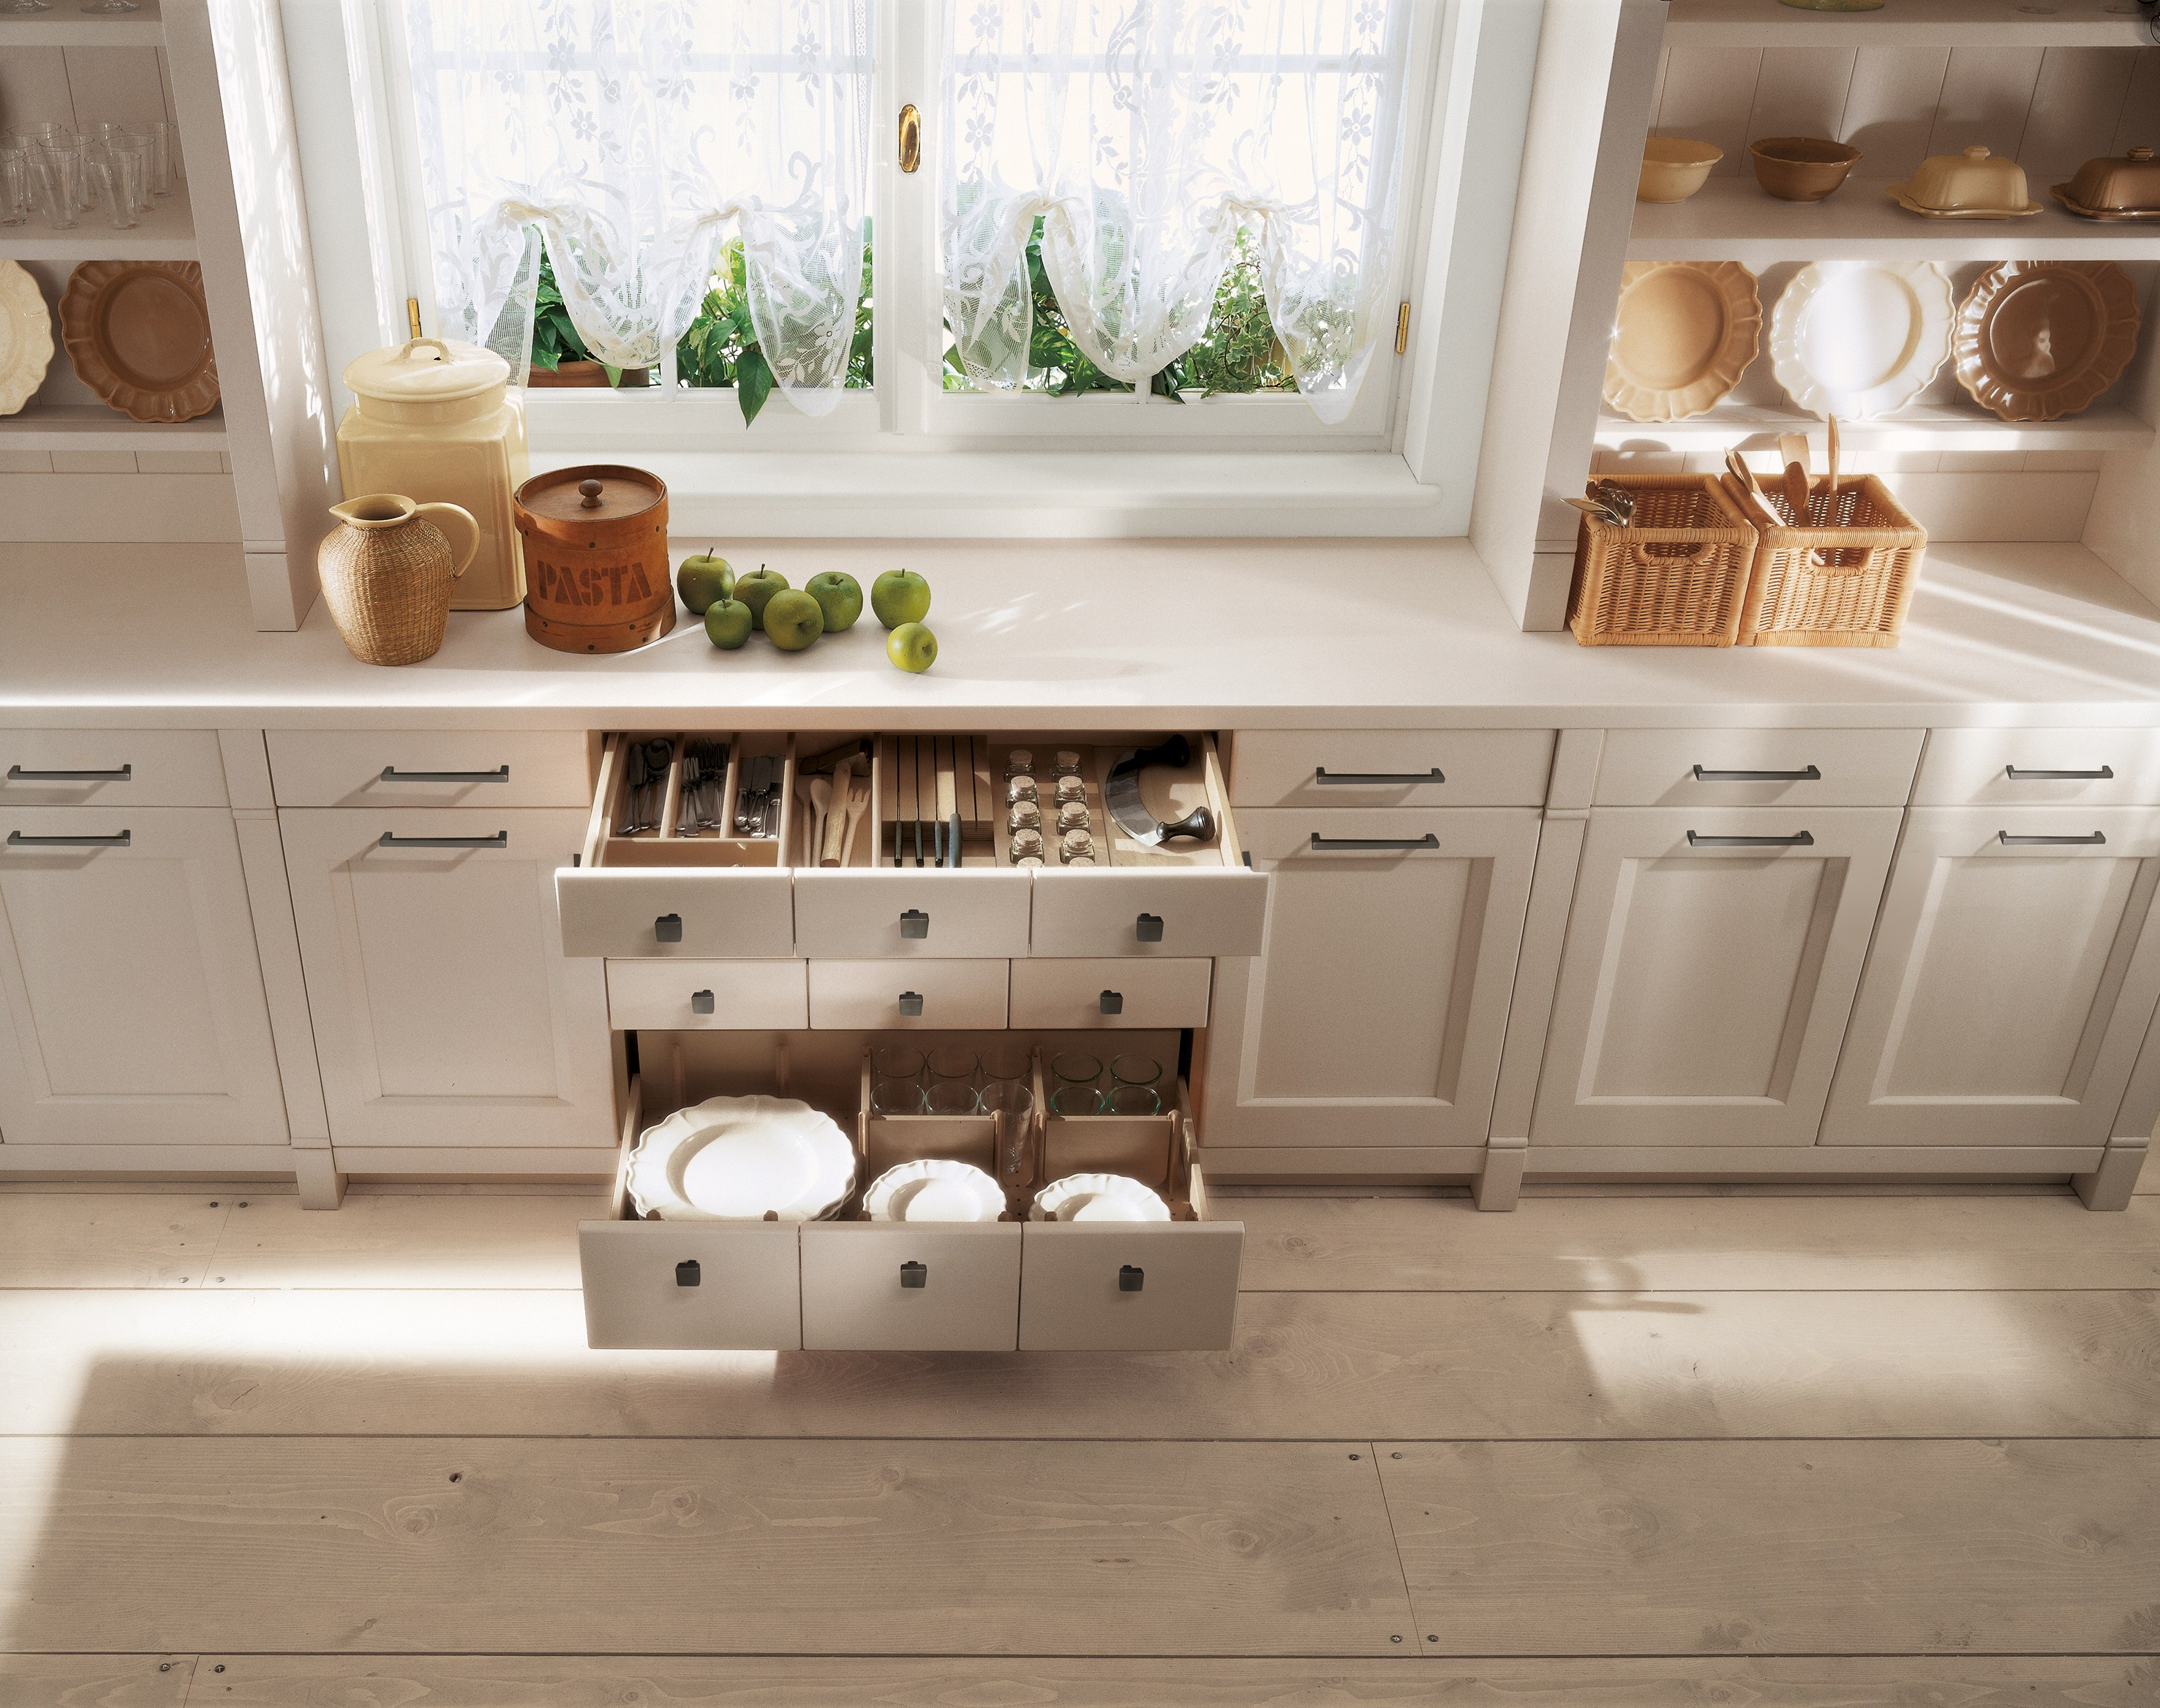 ENGLISH MOOD Provencal Style Kitchen By Minacciolo